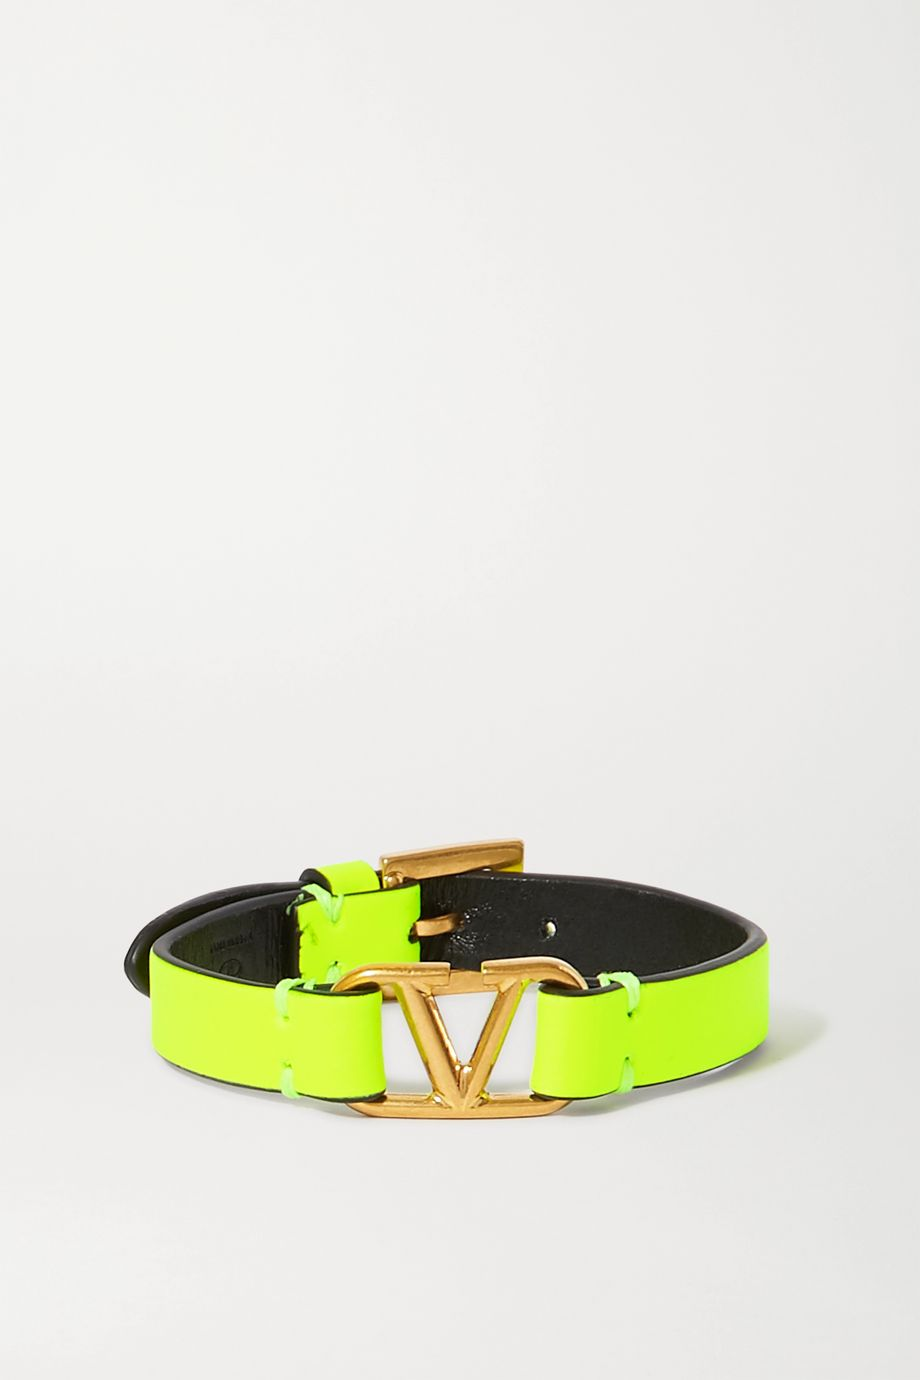 Valentino Valentino Garavani neon leather and gold-tone bracelet